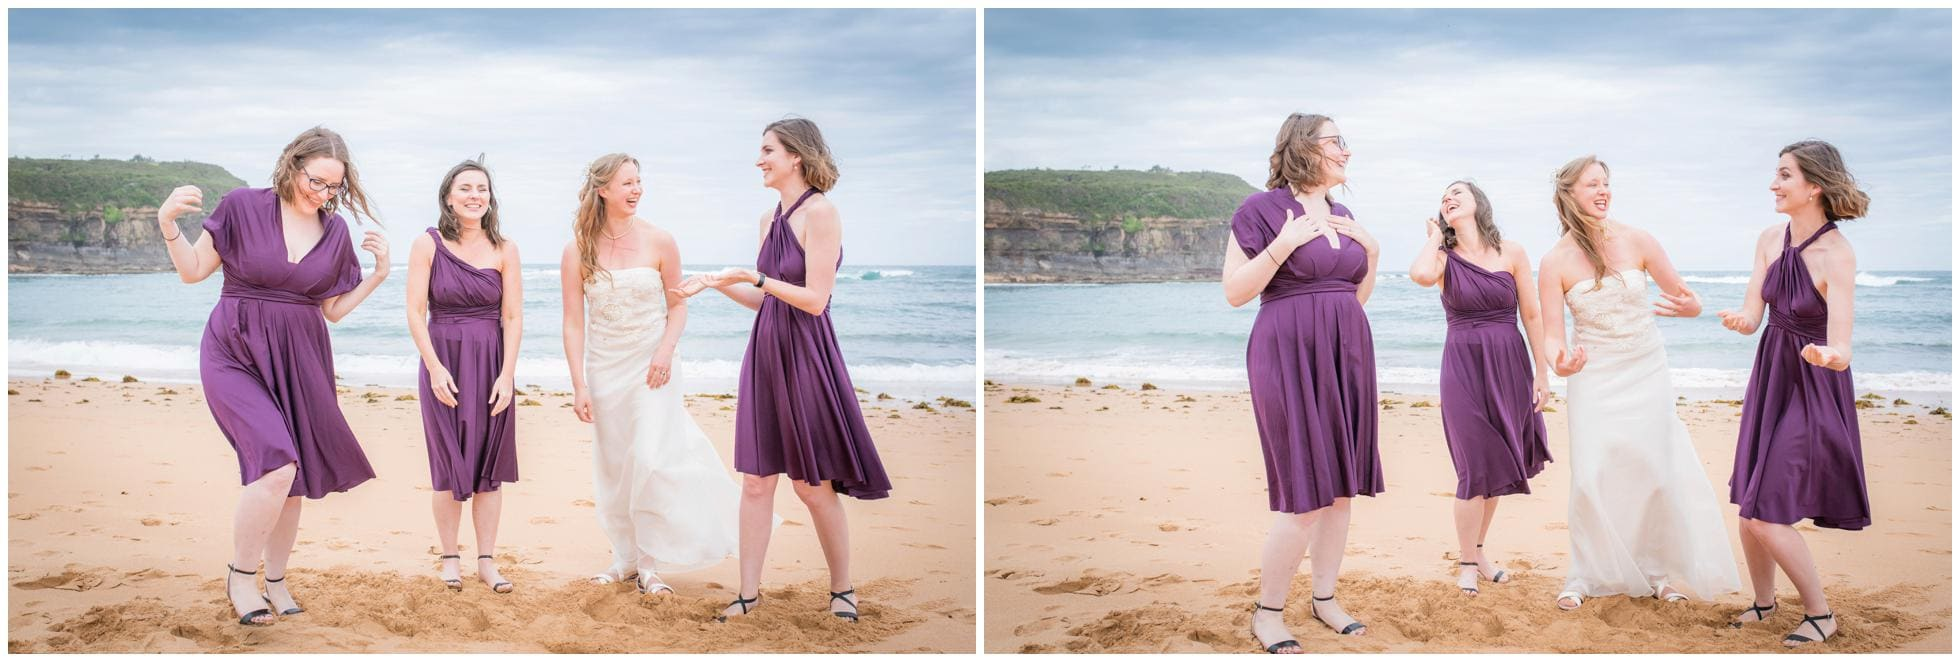 Bridesmaids enjoying silly moments on the beach